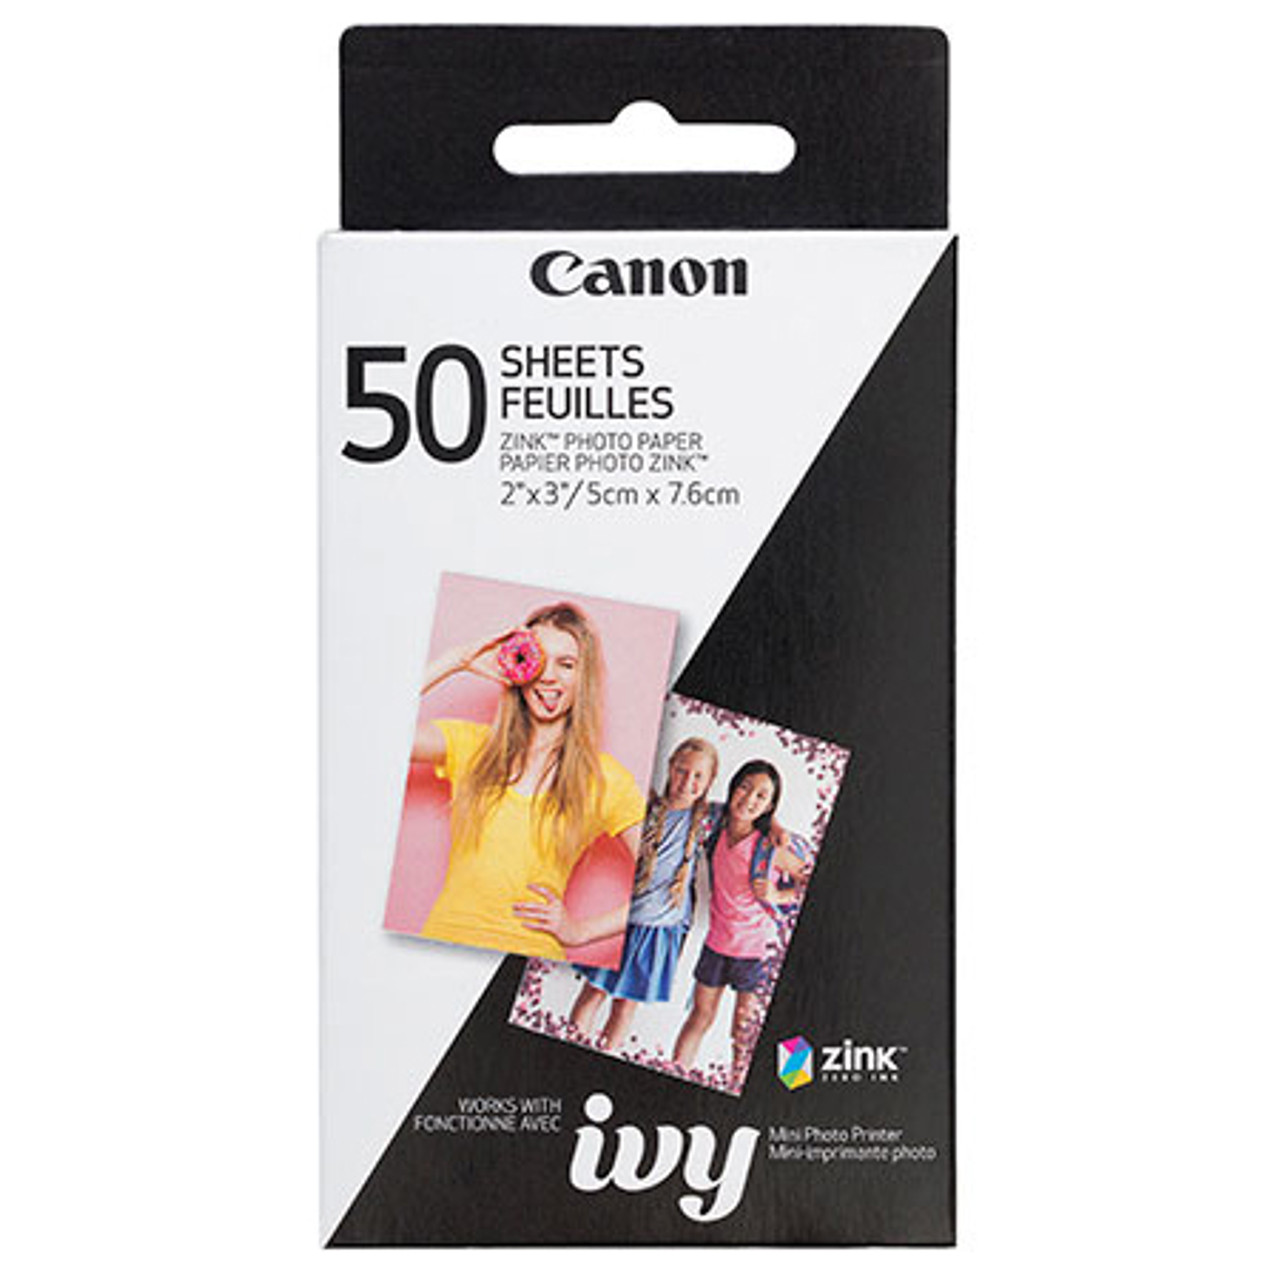 CANON ZINK ZP-2030 PHOTO PAPER PACK (50 SHEETS)